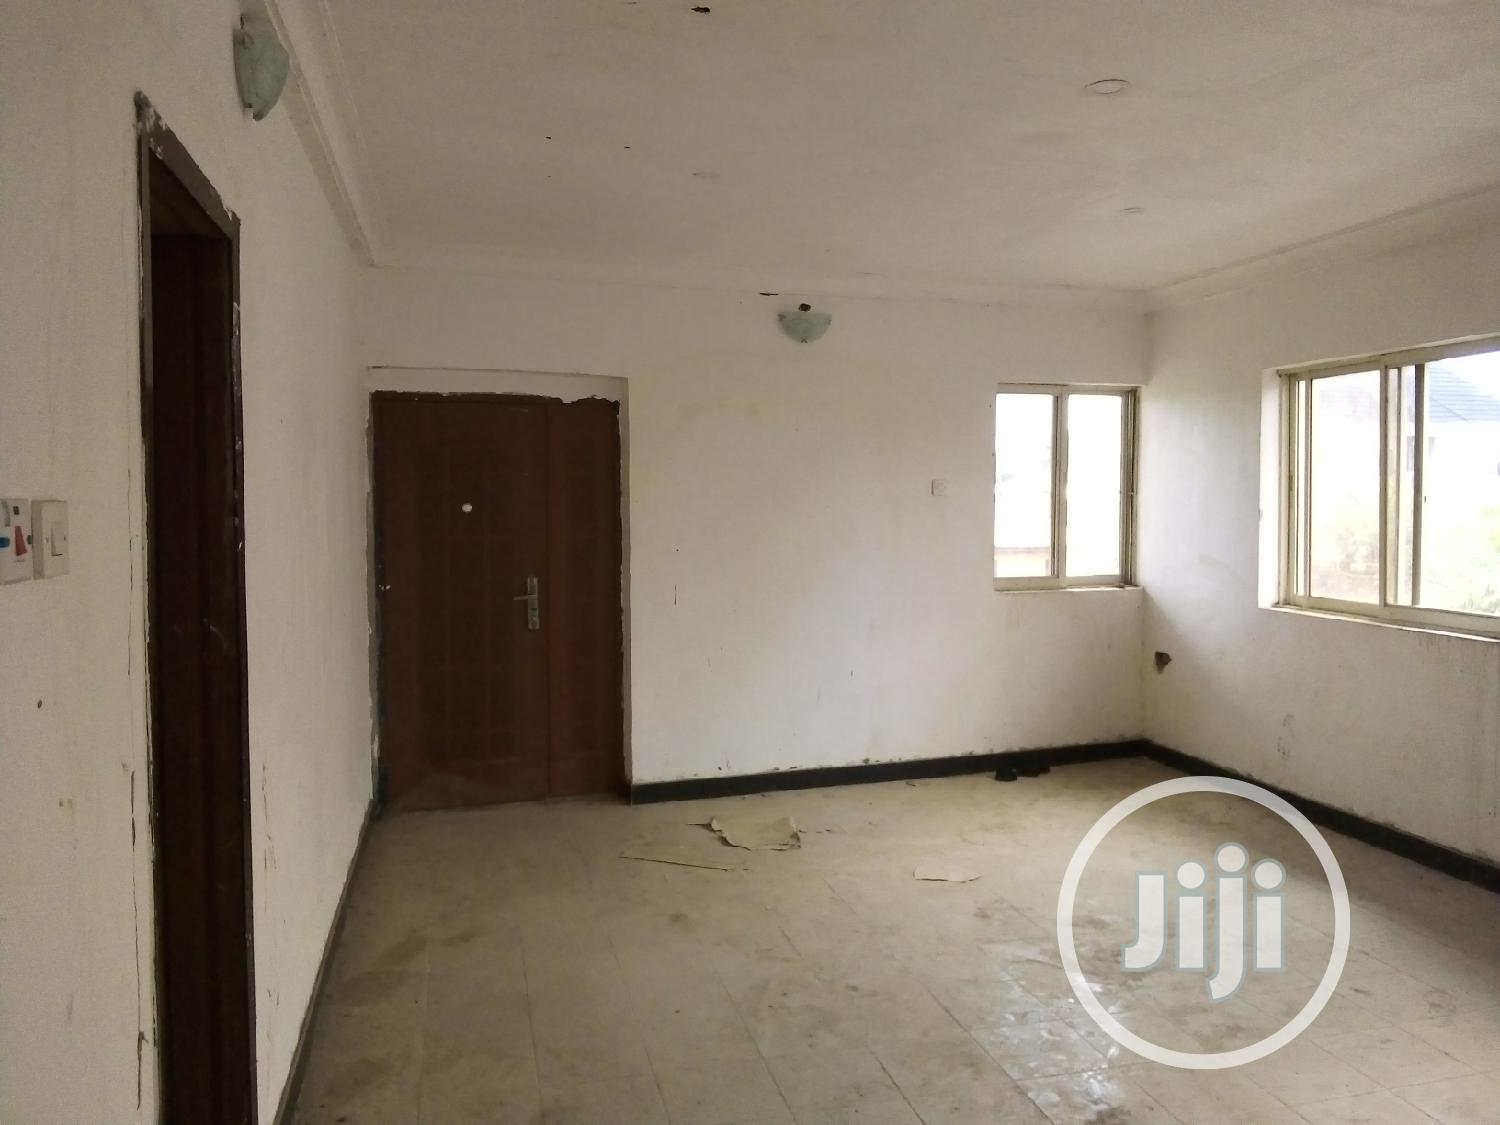 4 Bedroom Semi Detached Duplex With A Room BQ For Sale N20m | Houses & Apartments For Sale for sale in Lekki Expressway, Lekki, Nigeria